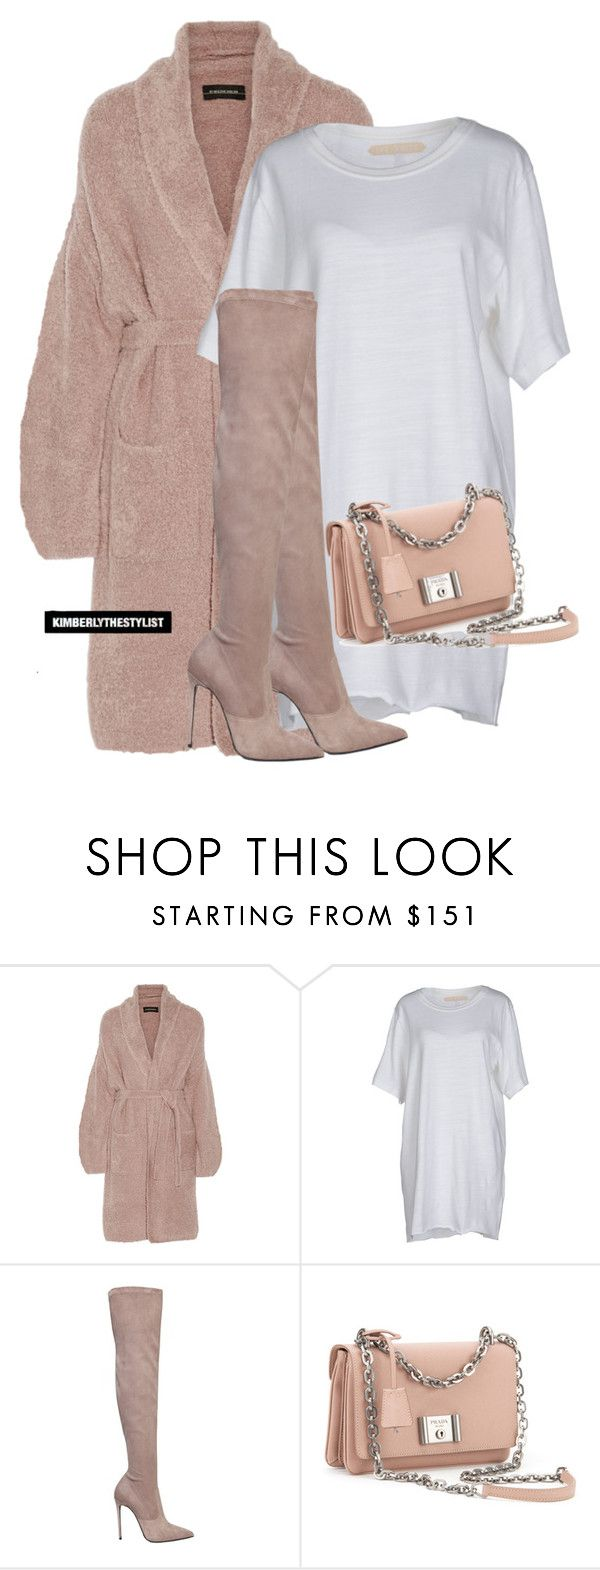 """""""Untitled #2391"""" by whokd ❤ liked on Polyvore featuring By Malene Birger, Off-White, Le Silla and Prada"""